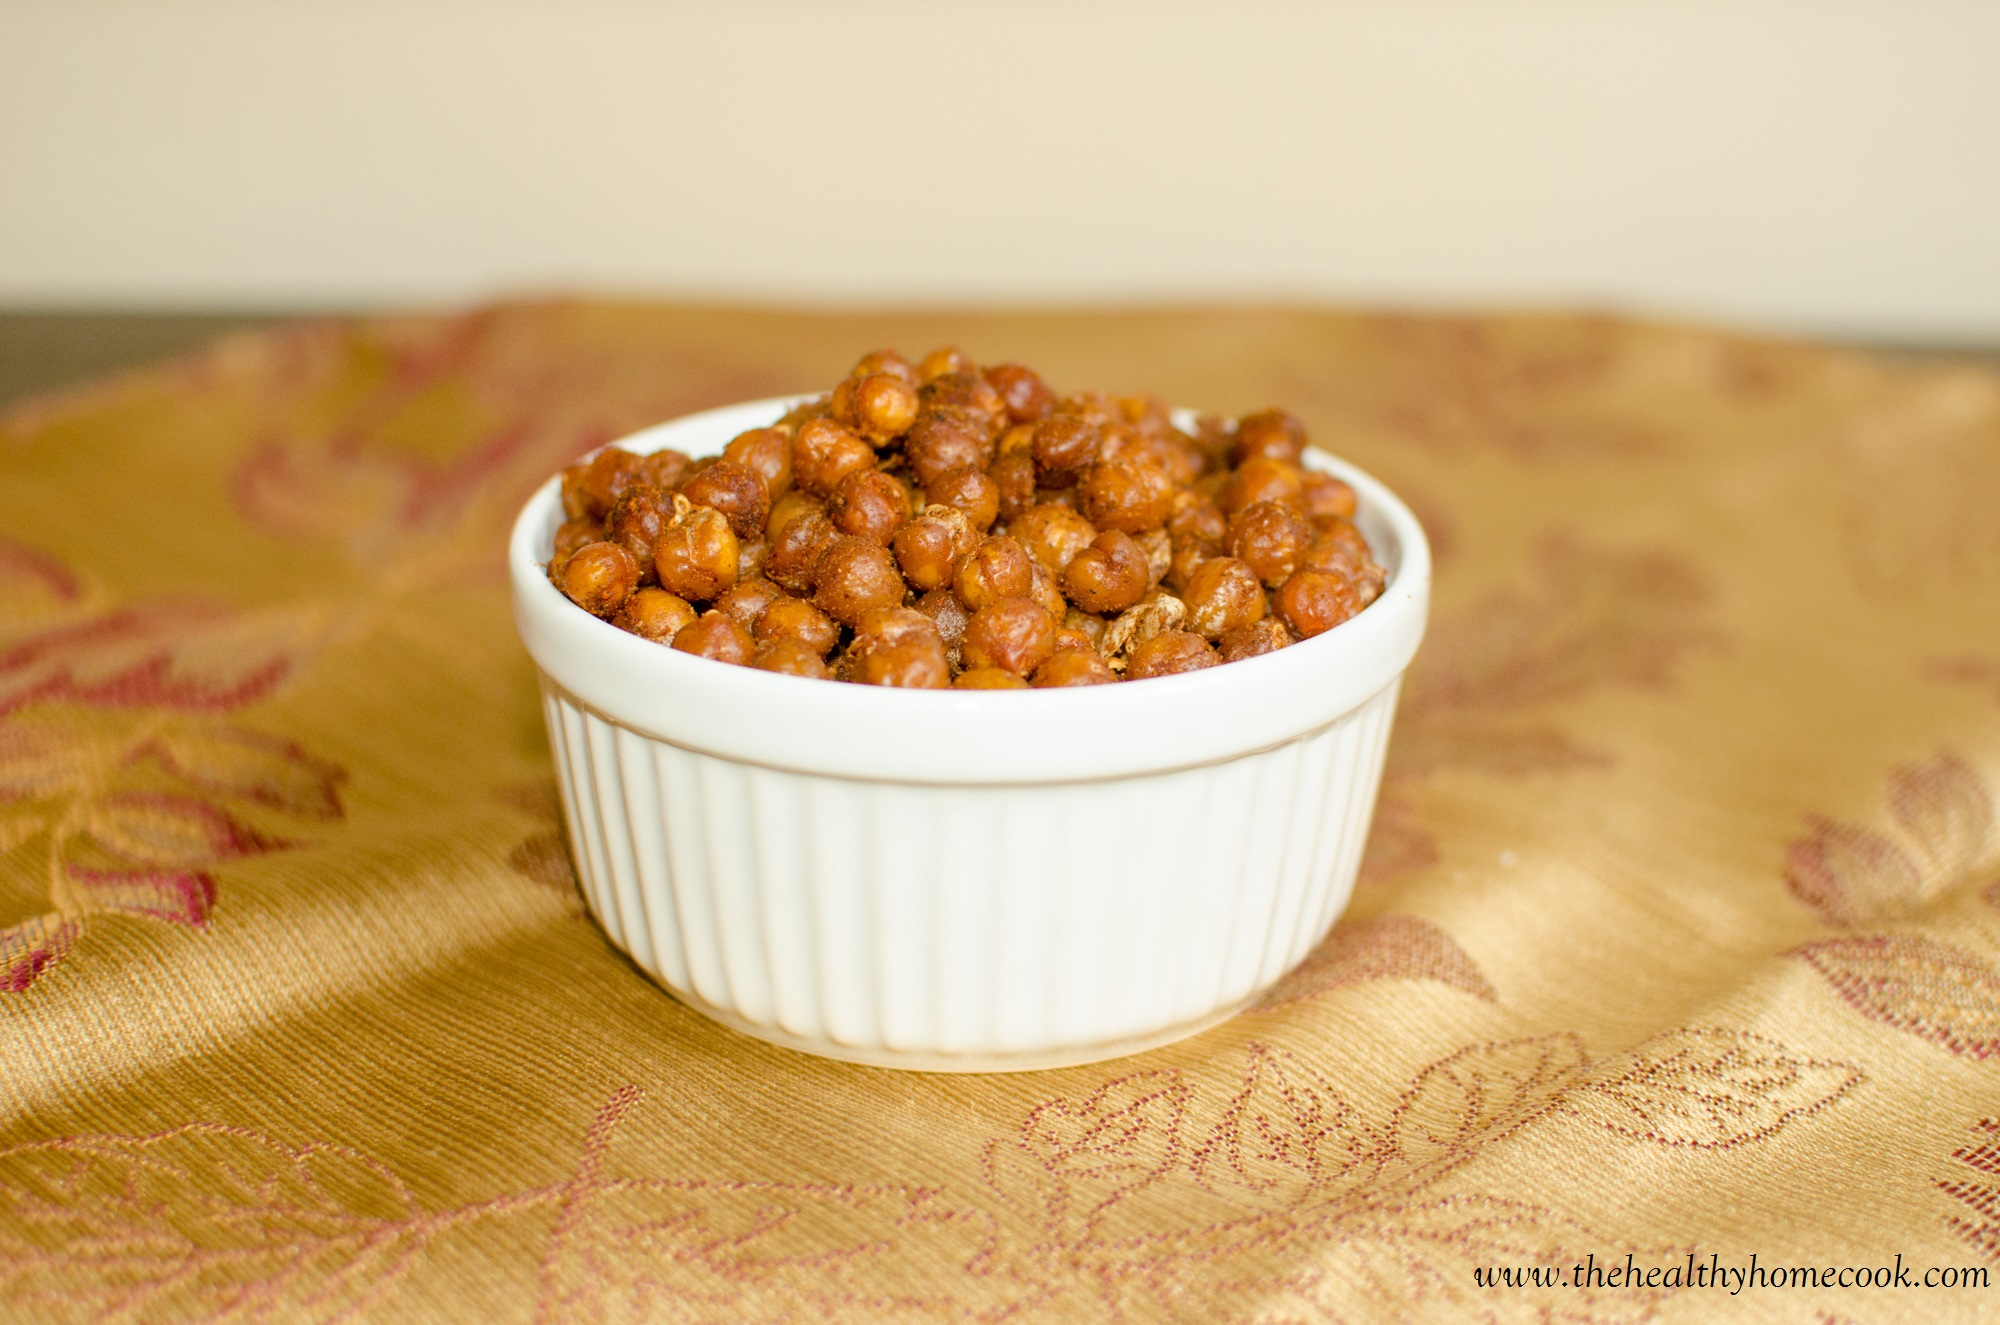 Roasted chickpeas, are a delicious savory snack that's low fat, high fiber, packed with protein, and perfect for kids and adults.